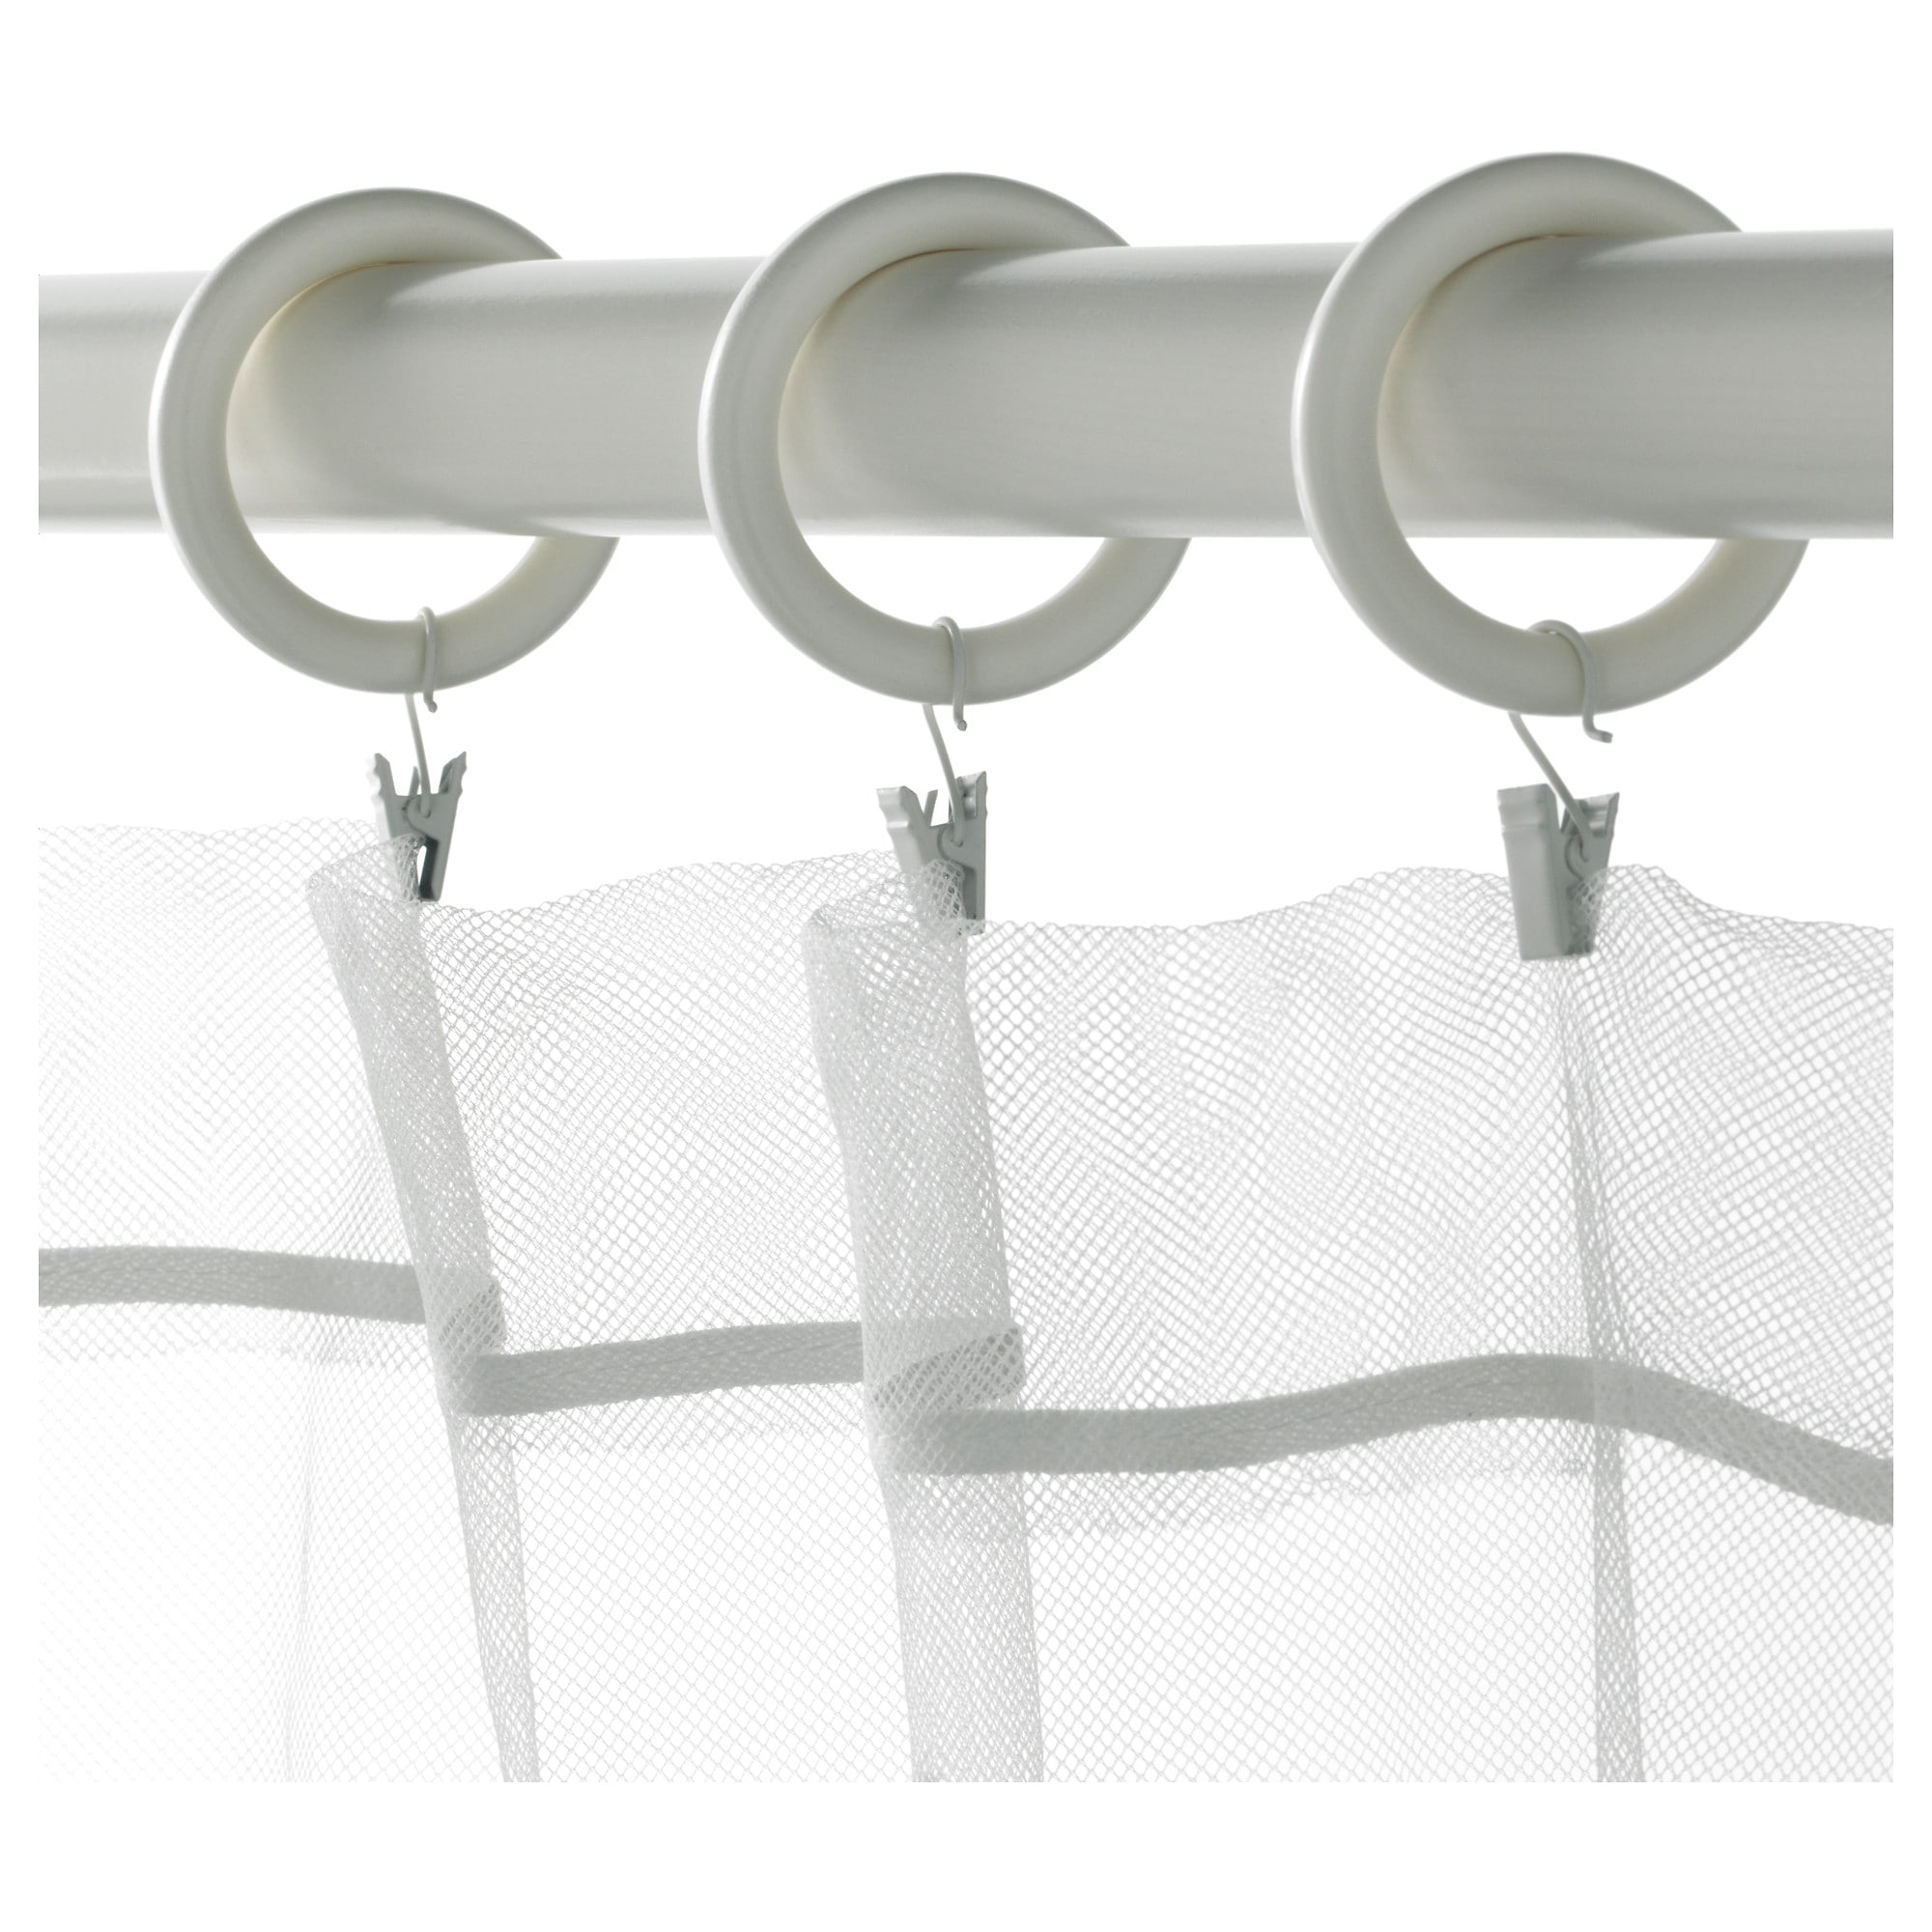 White curtain rings with clips - White Curtain Rings With Clips 3